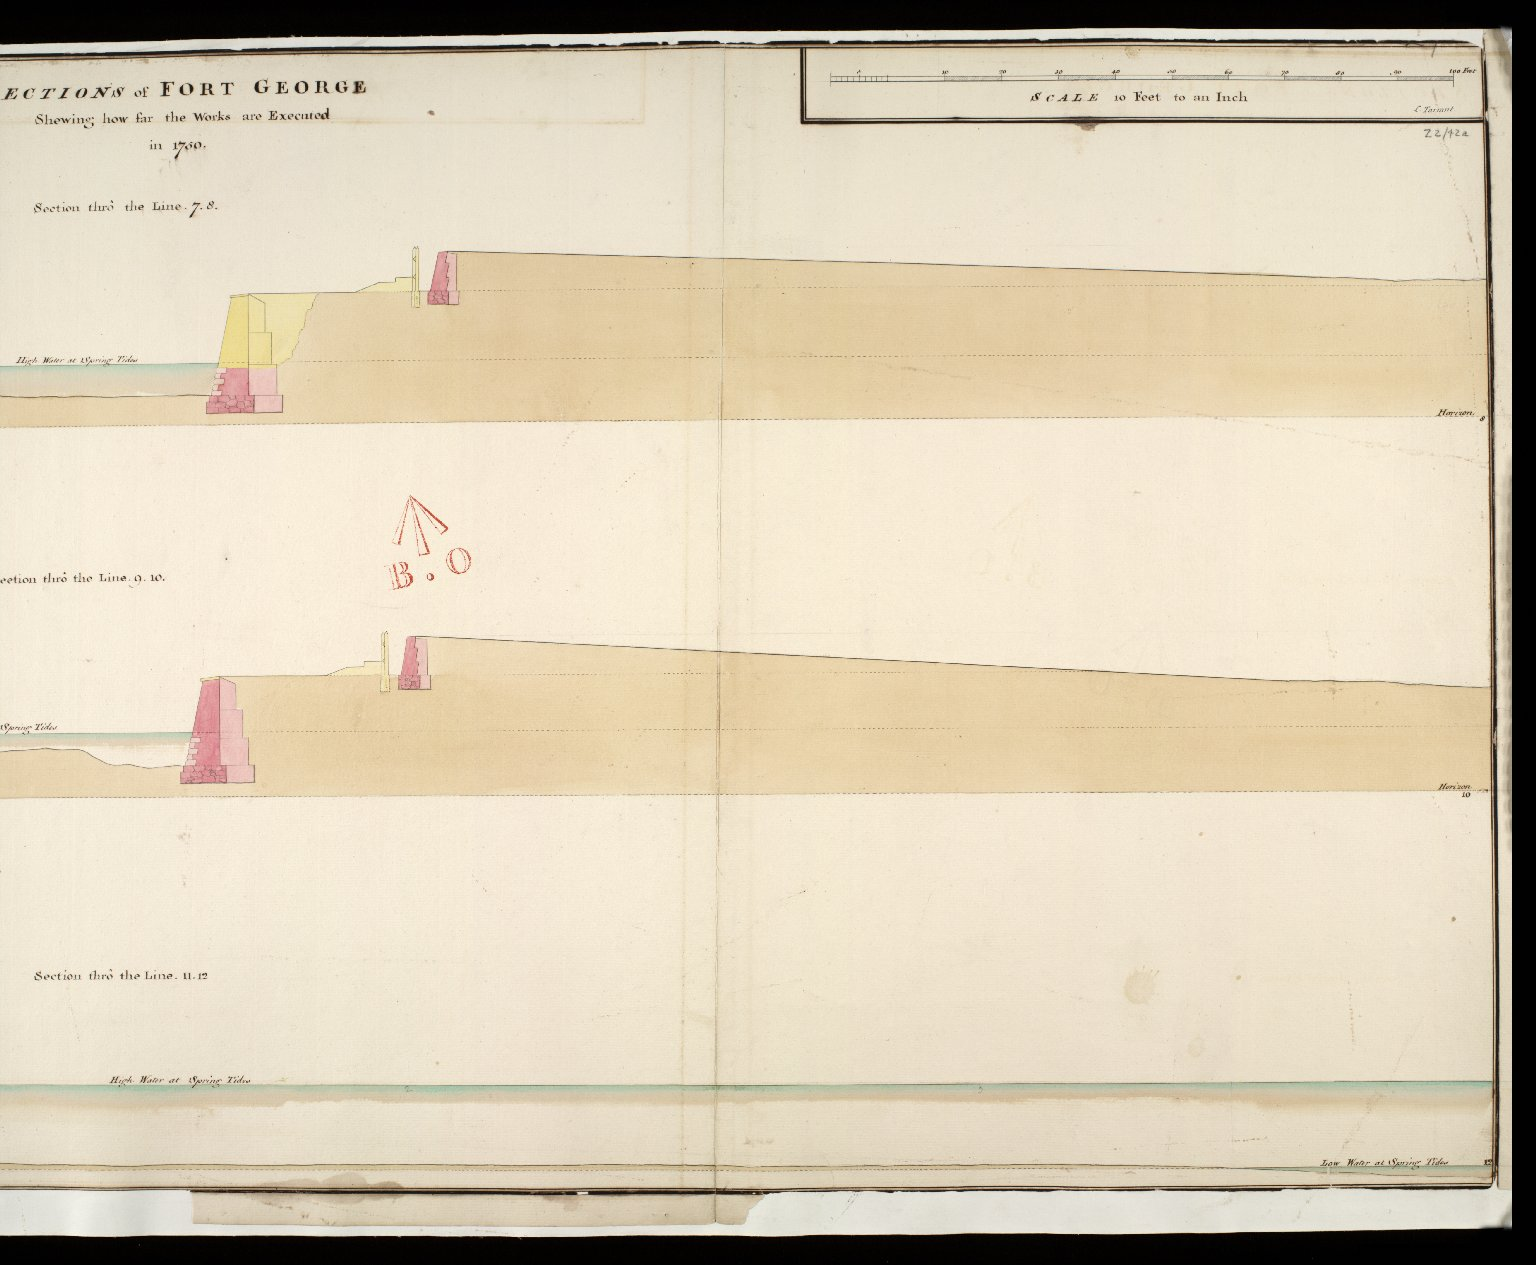 Sections of Fort George shewing how far the works are executed in 1750 : section thro' the line 7.8; section thro' the line 9.10; section thro' the line 11.12 [2 of 2]